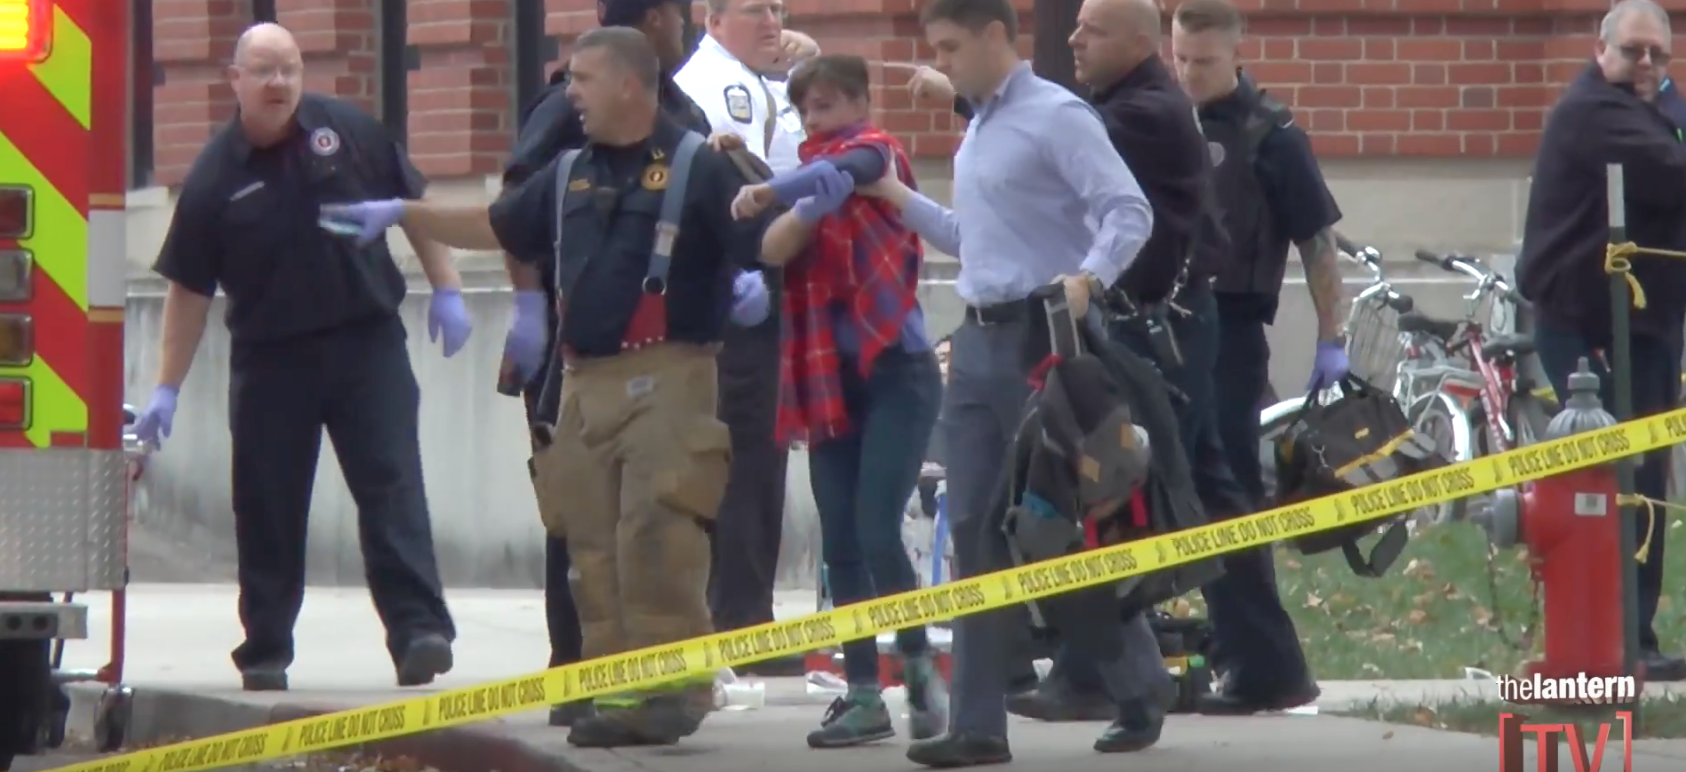 Scarlet Scoop: ISIS claims OSU attack